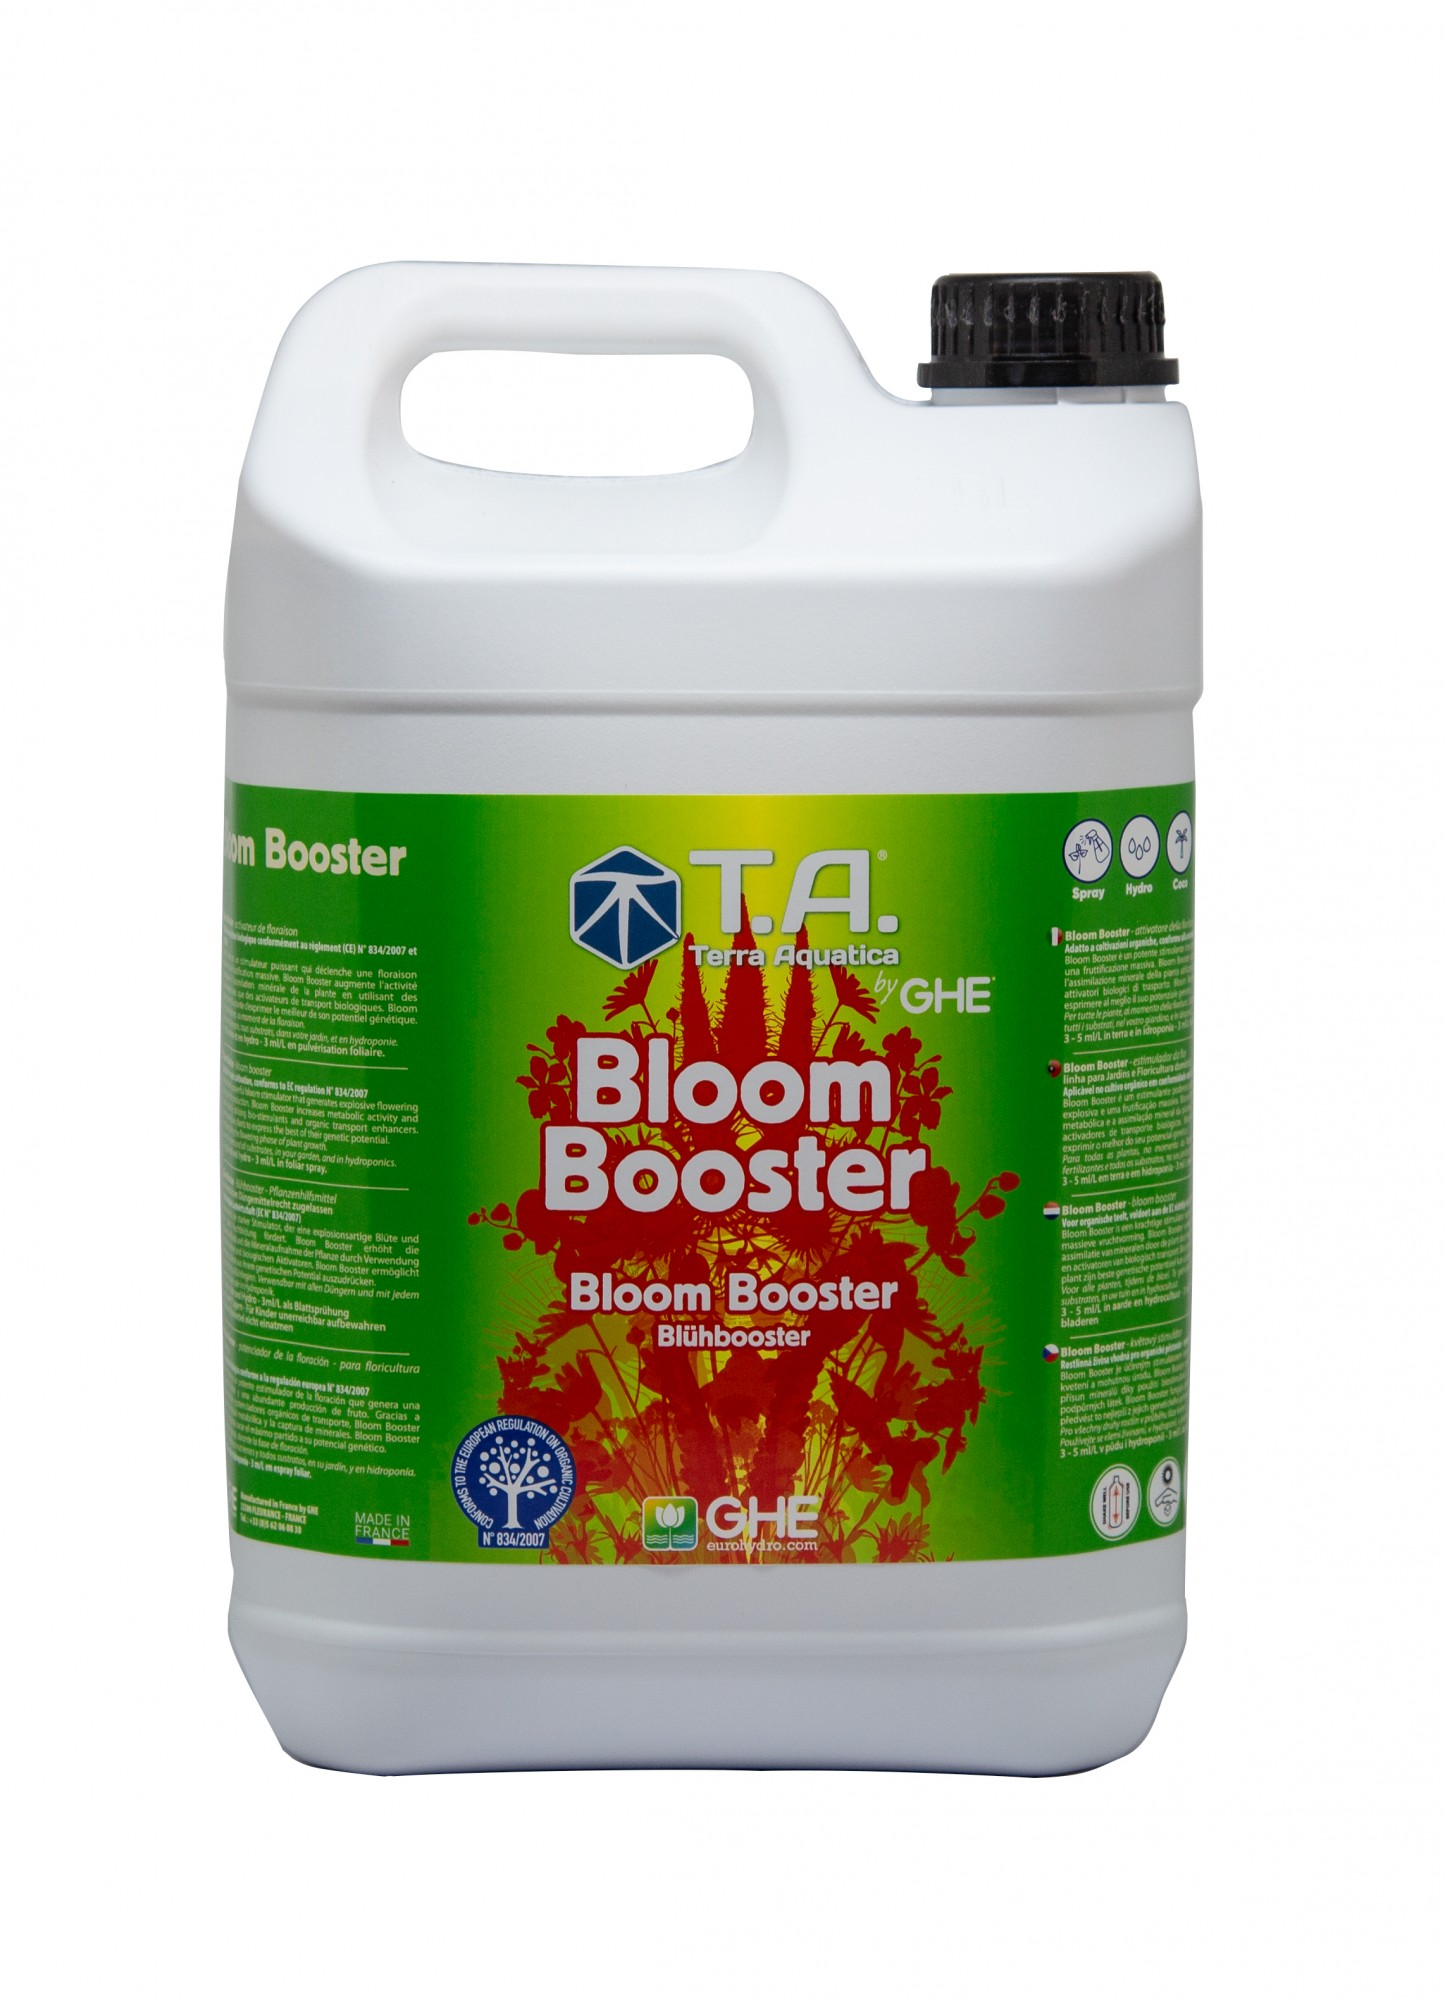 GHE GO Bio Bud 10L (Bloom Booster)